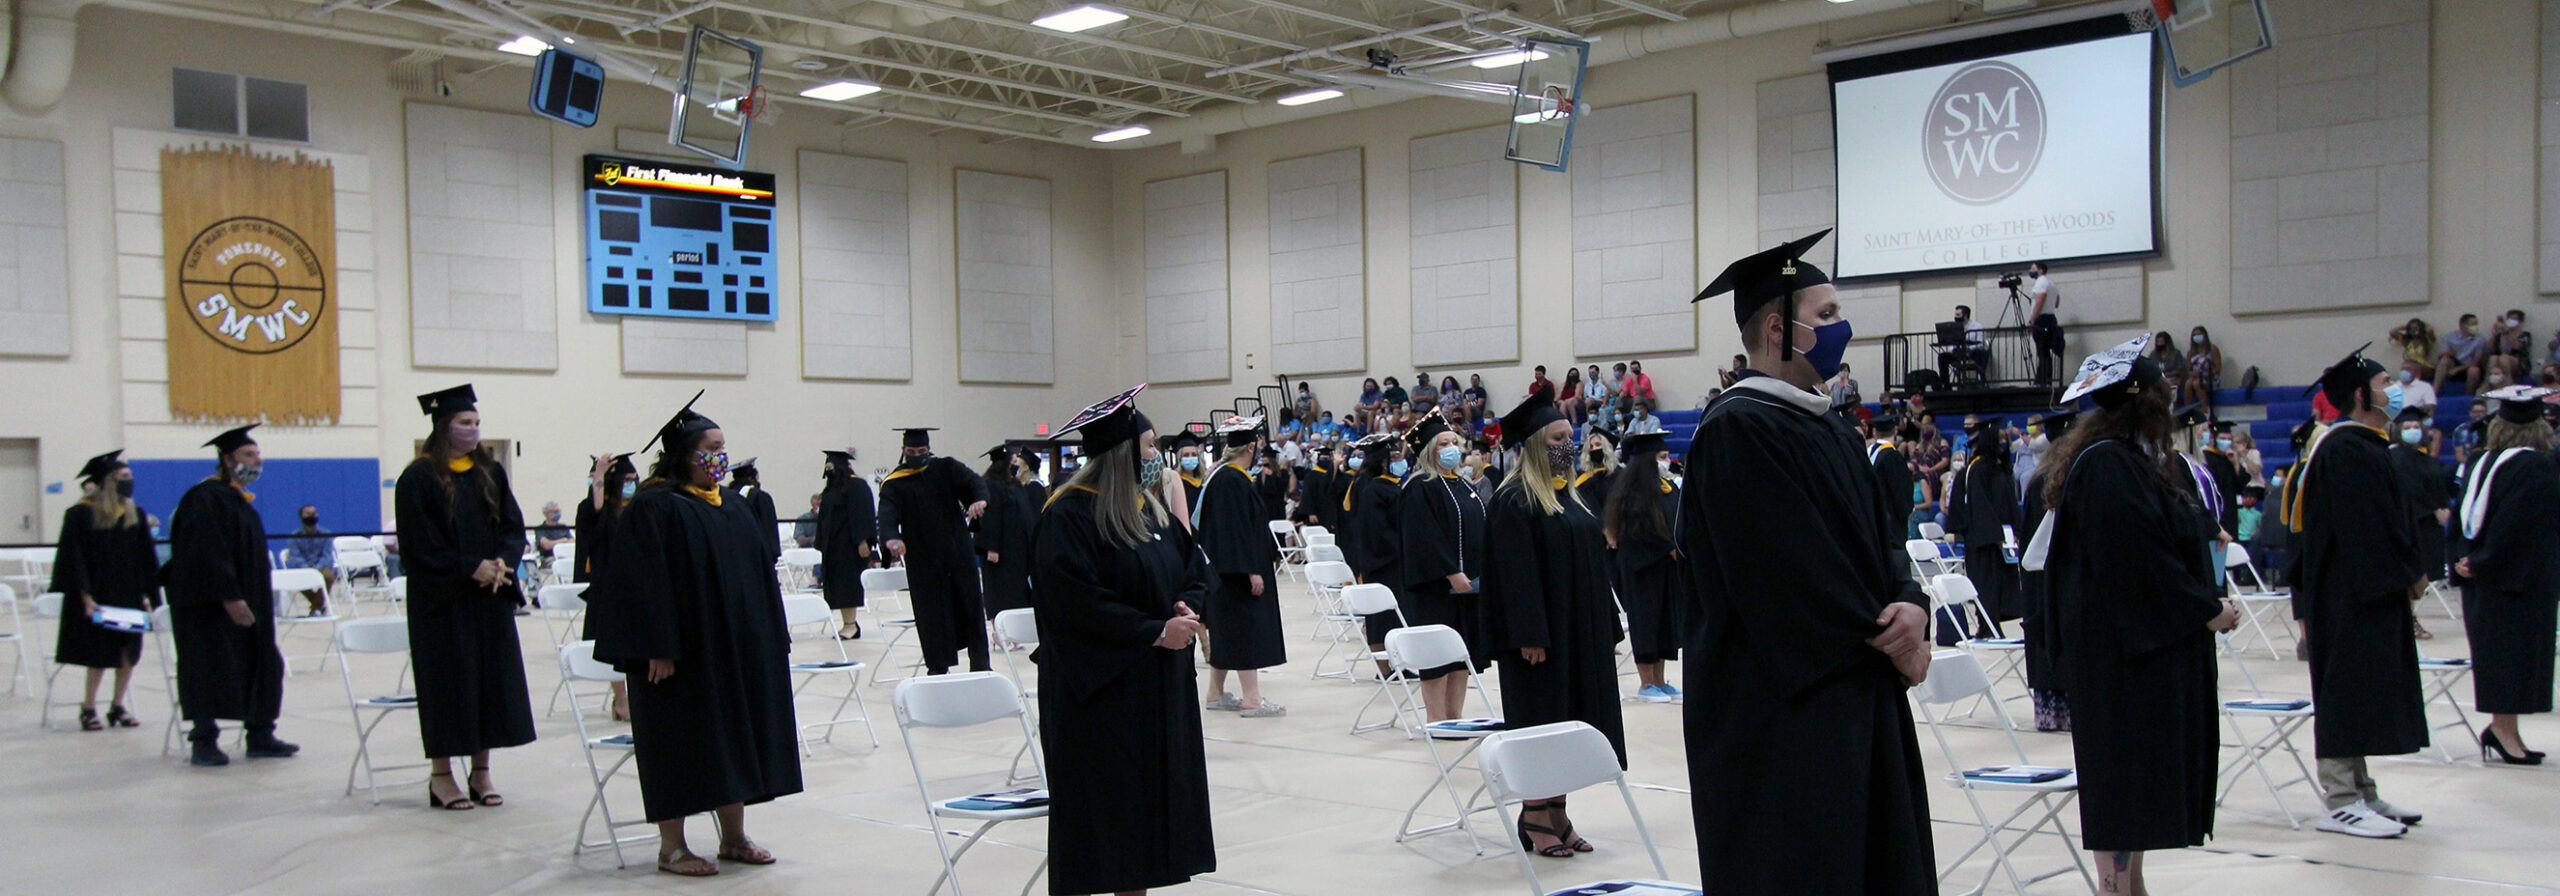 Graduates standing at commencement